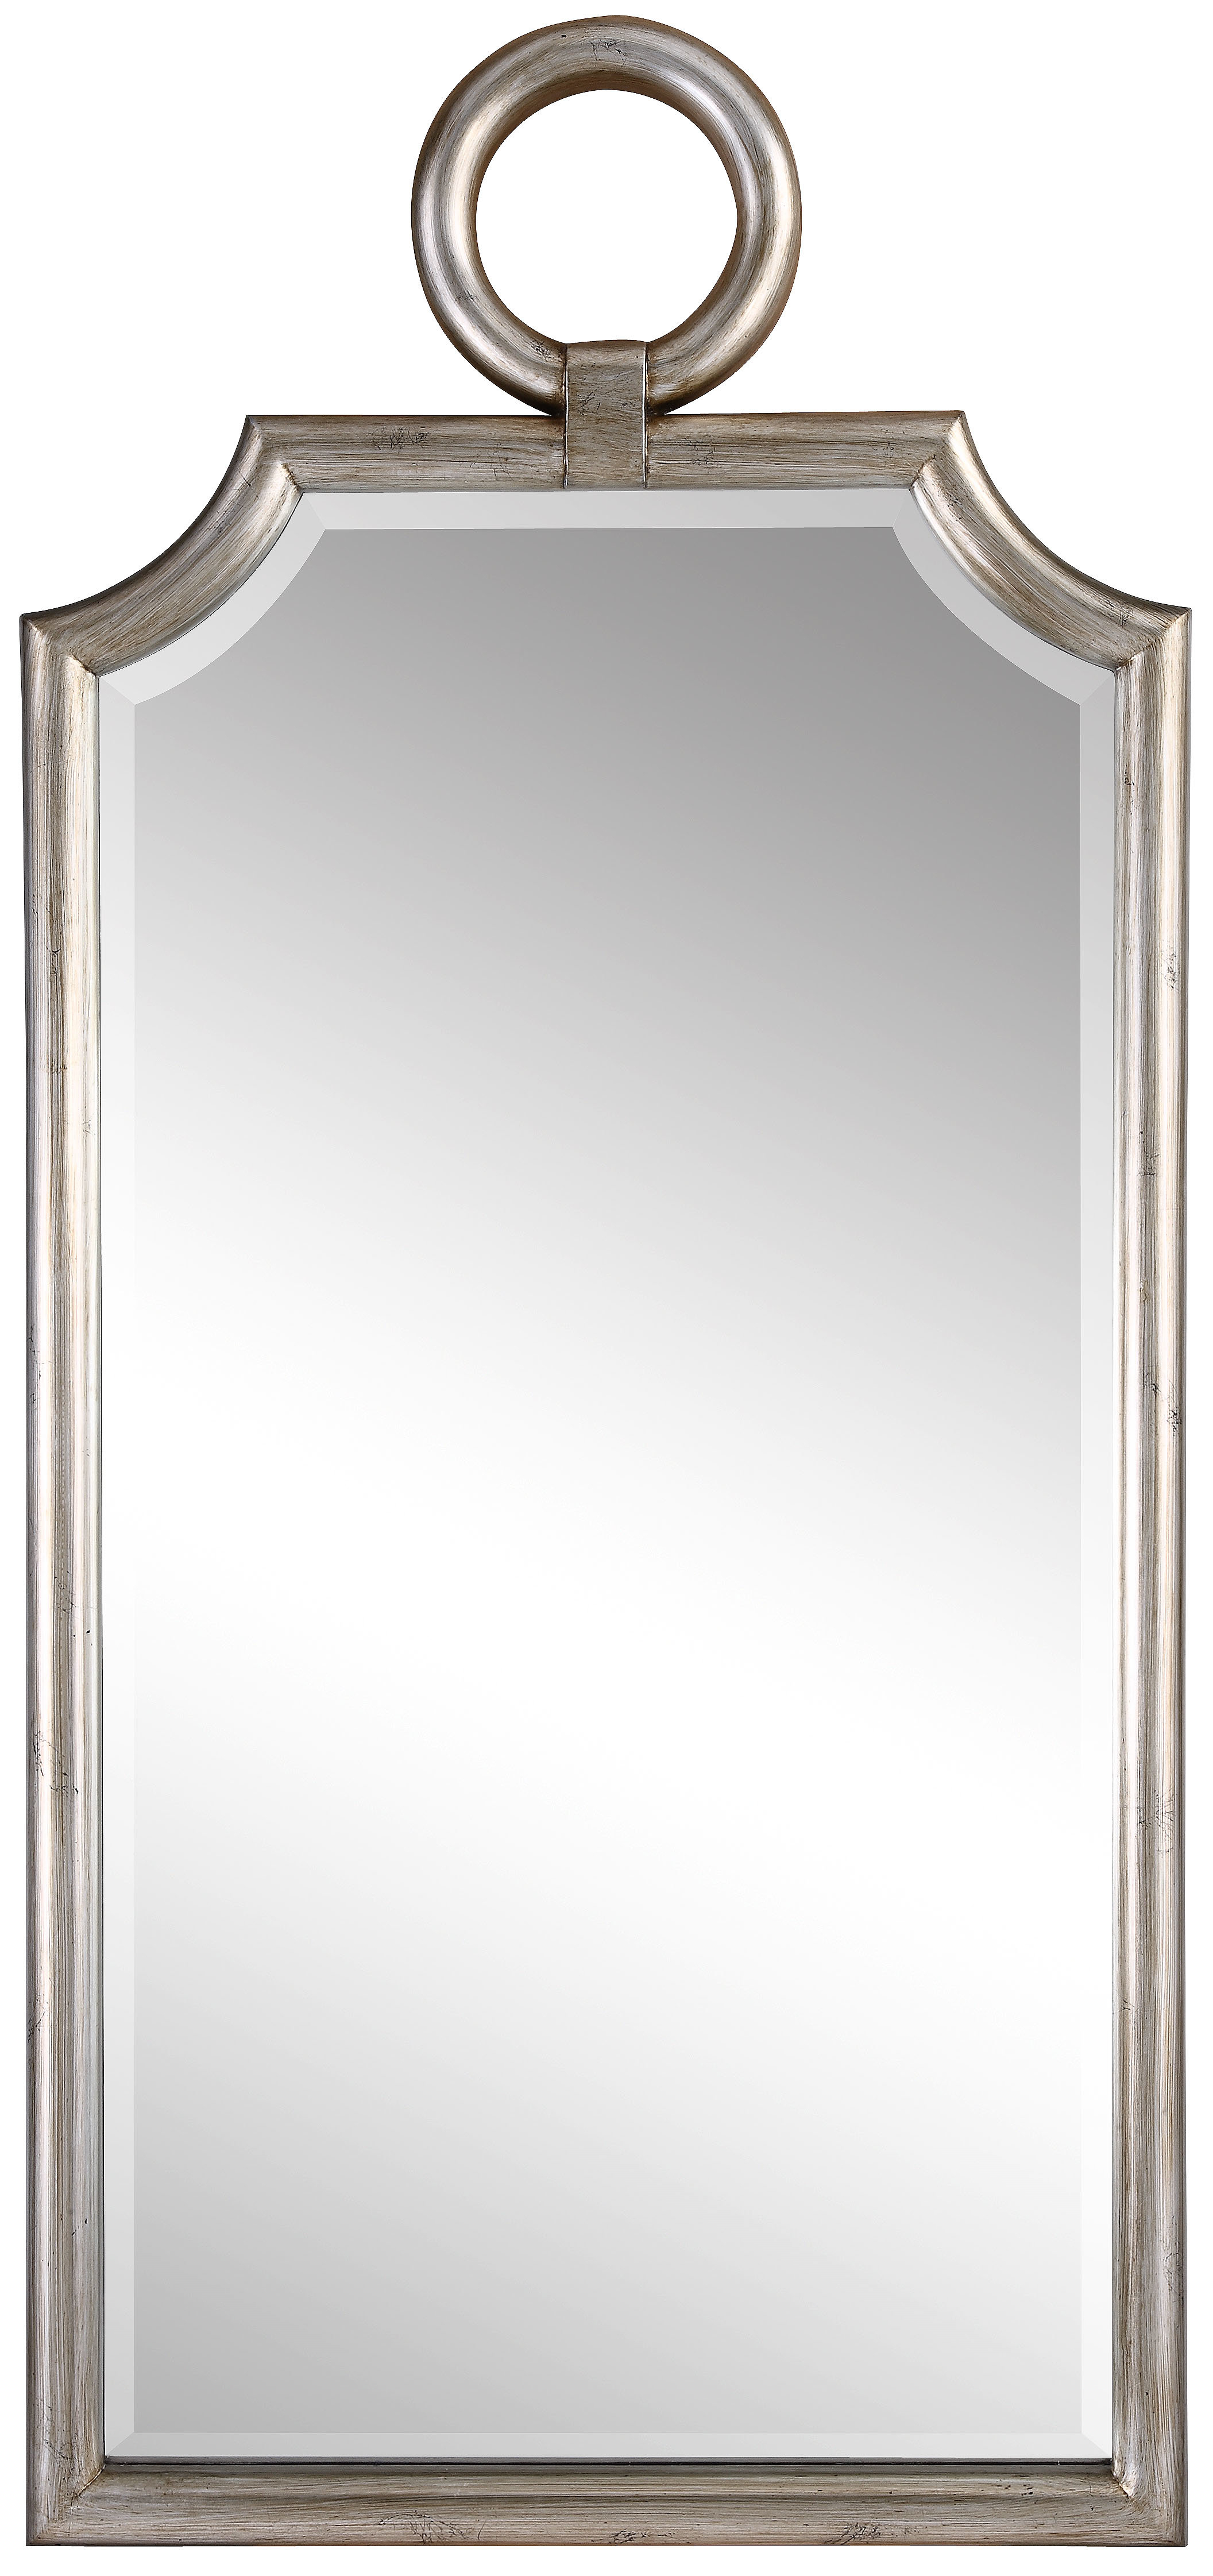 Dariel Tall Arched Scalloped Wall Mirrors Throughout 2020 Mirabel Accent Mirror (View 9 of 20)